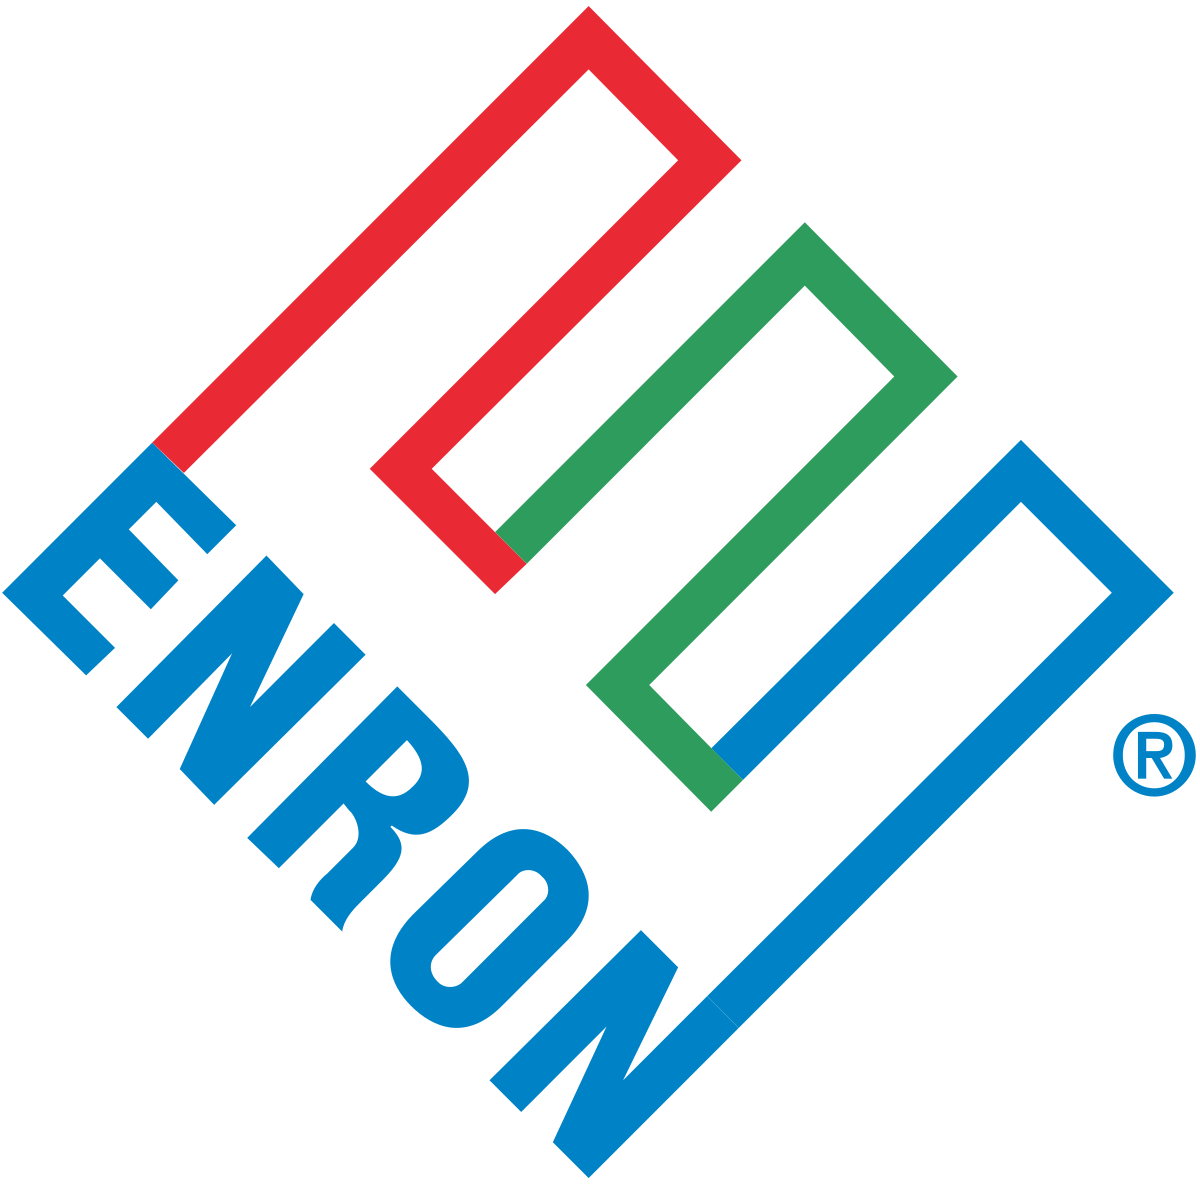 Scandals clip accounting. Enron scandal wikipedia